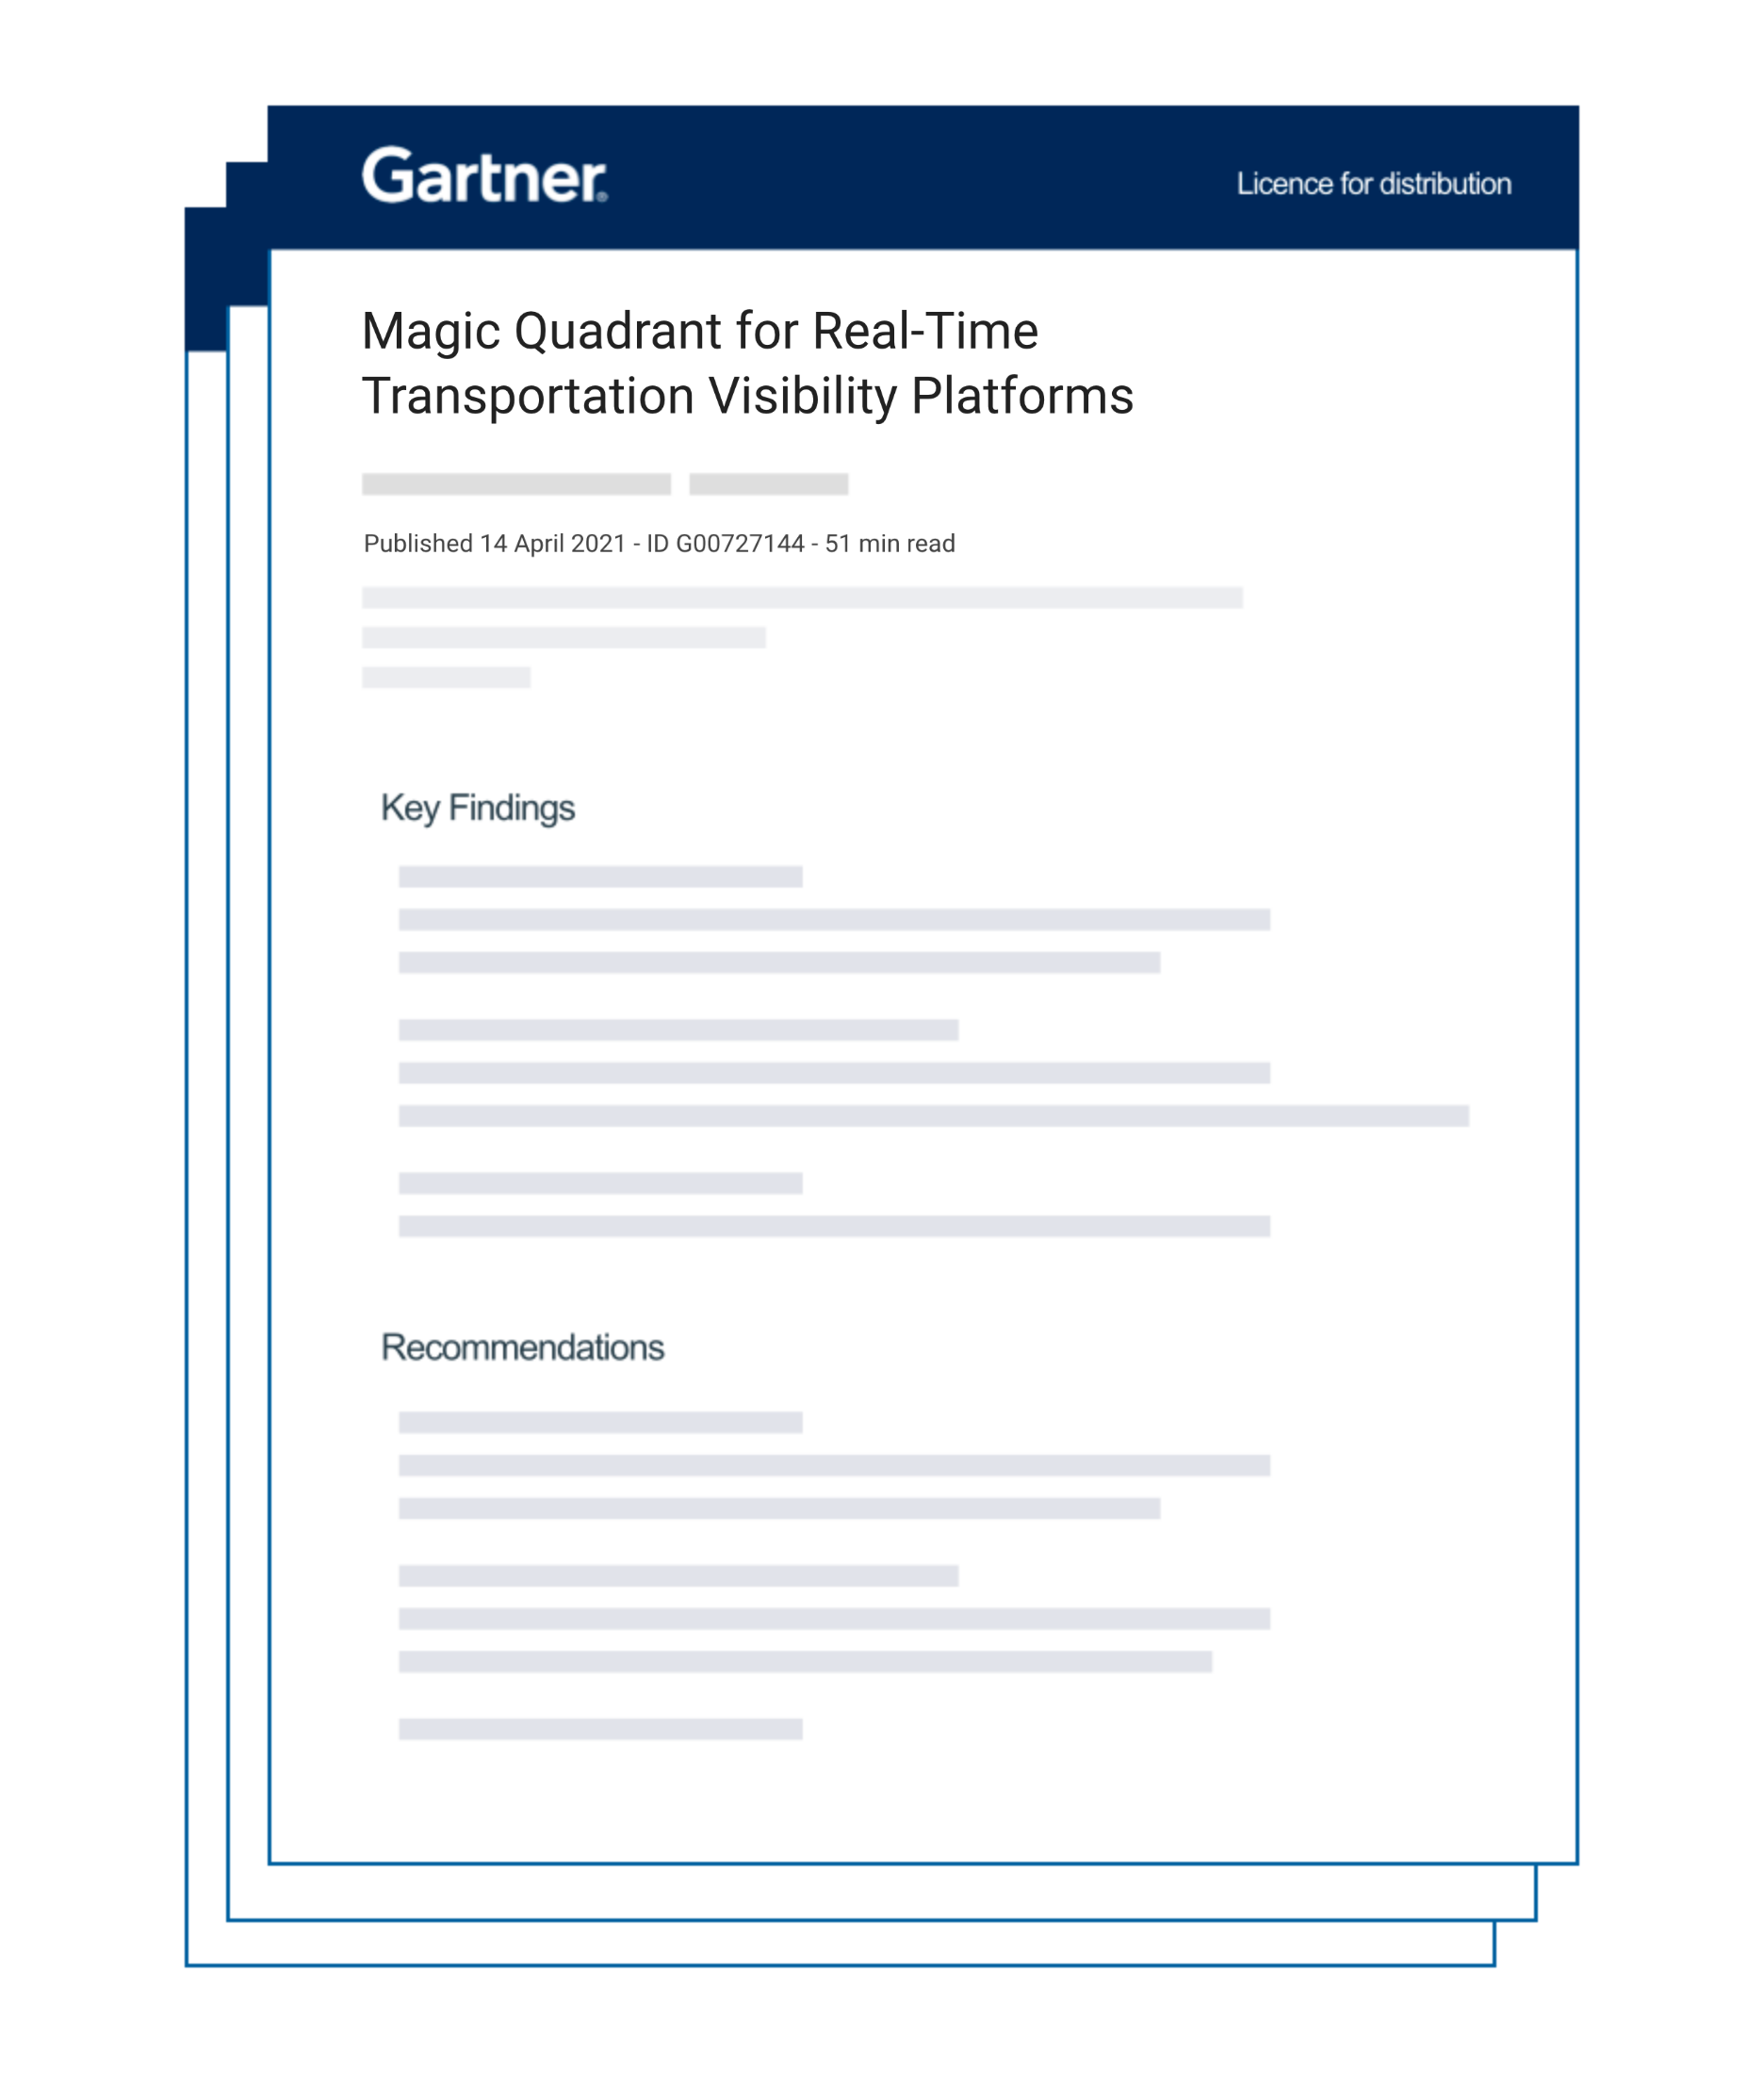 Shippeo is delighted to have been recognized by Gartner in the inaugural Magic Quadrant for Real-time Transportation Visibility Platforms 2021.